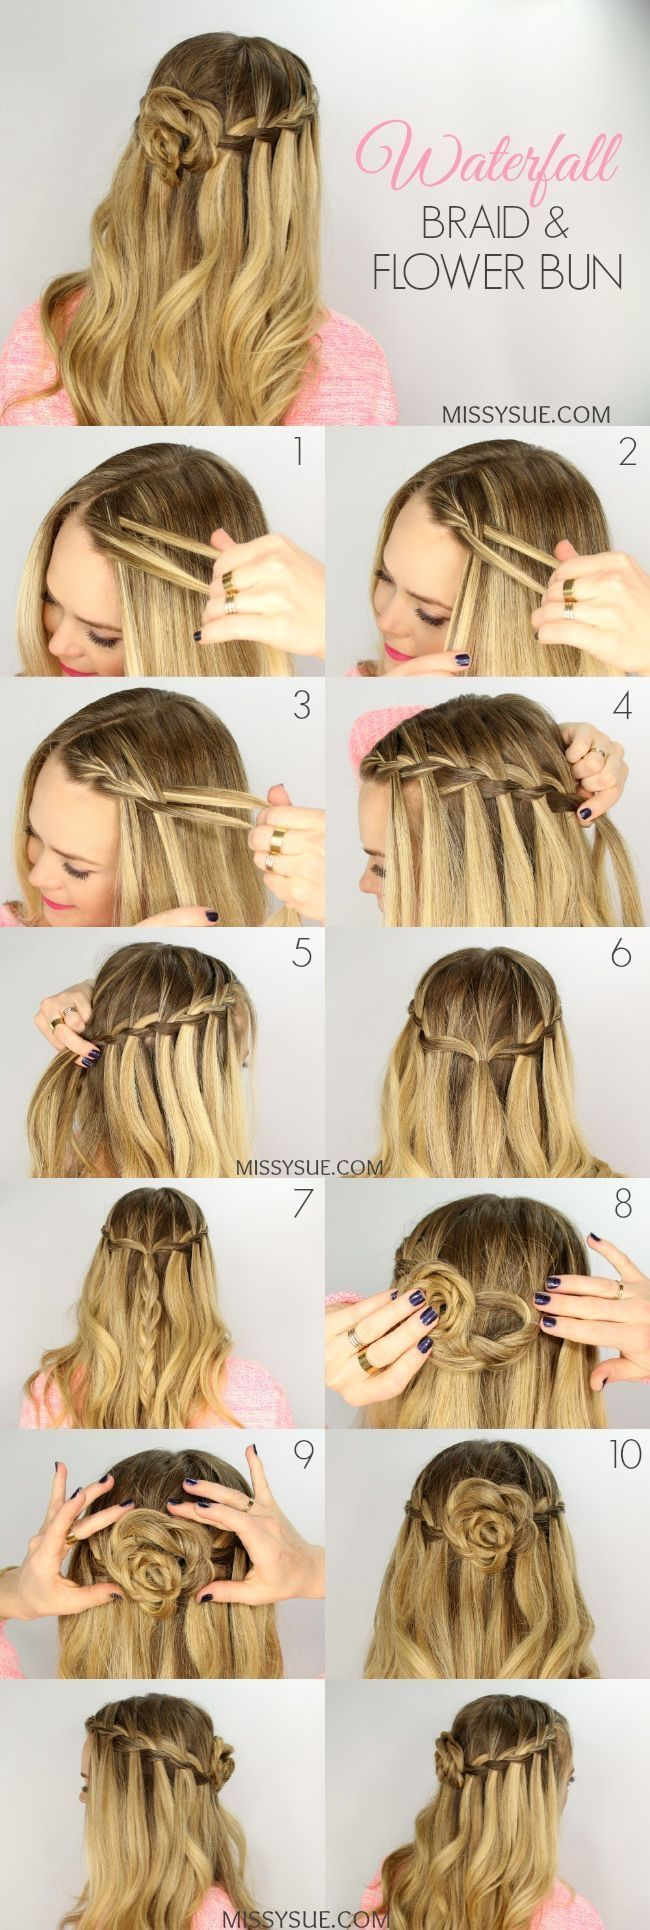 Love this i want to try it h pinterest hair style easy